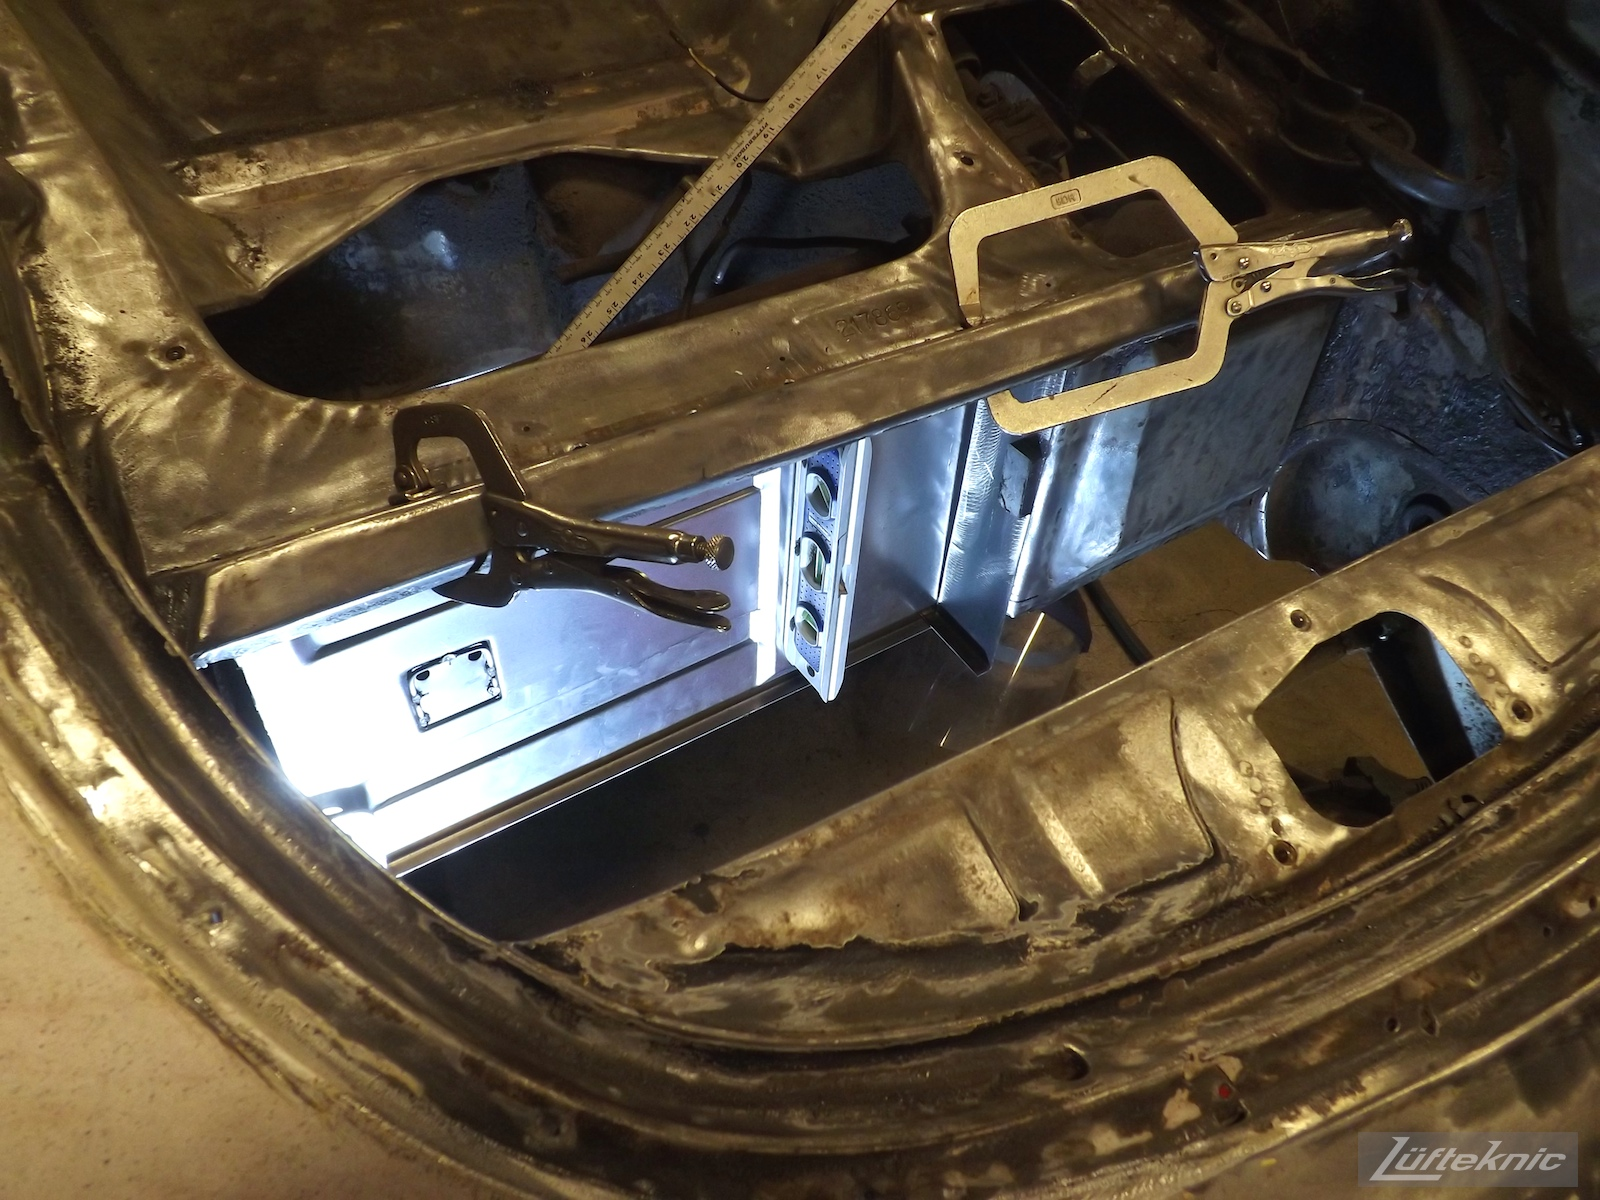 Metal work and repair on a White 1964 Porsche 356SC being restored.